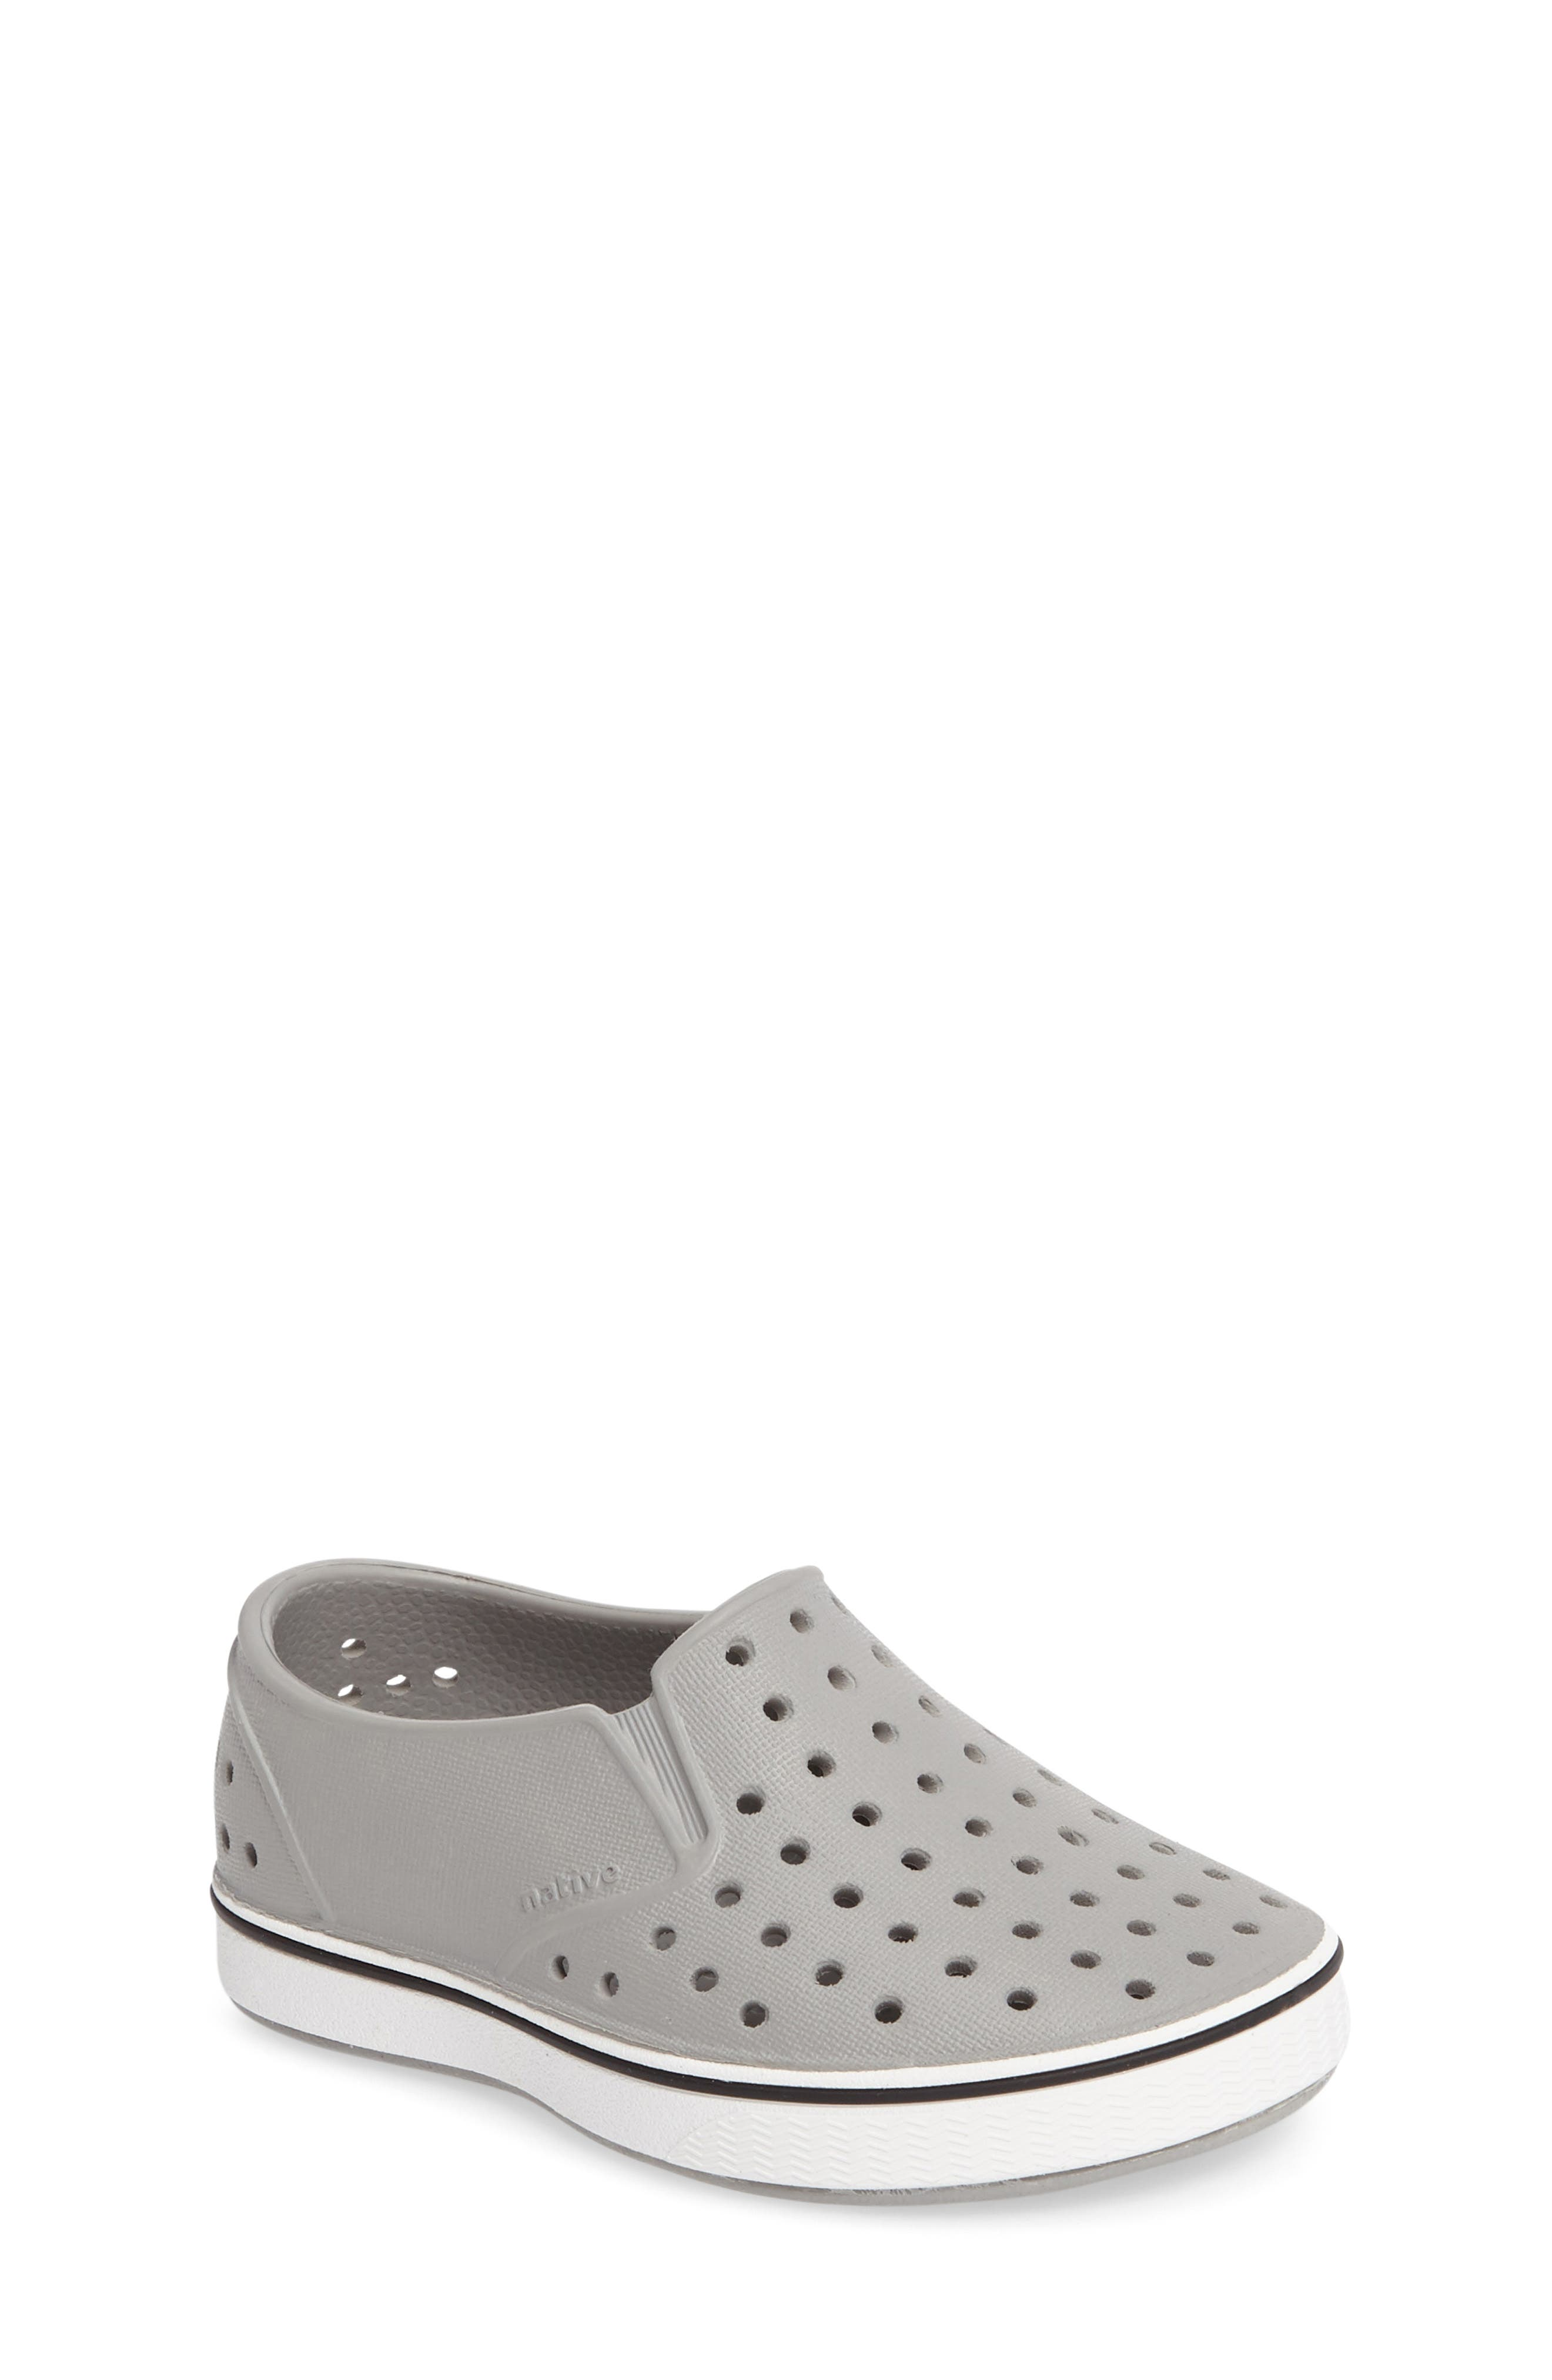 Miles Water Friendly Slip-On Sneaker,                         Main,                         color, Pigeon Grey/ Shell White